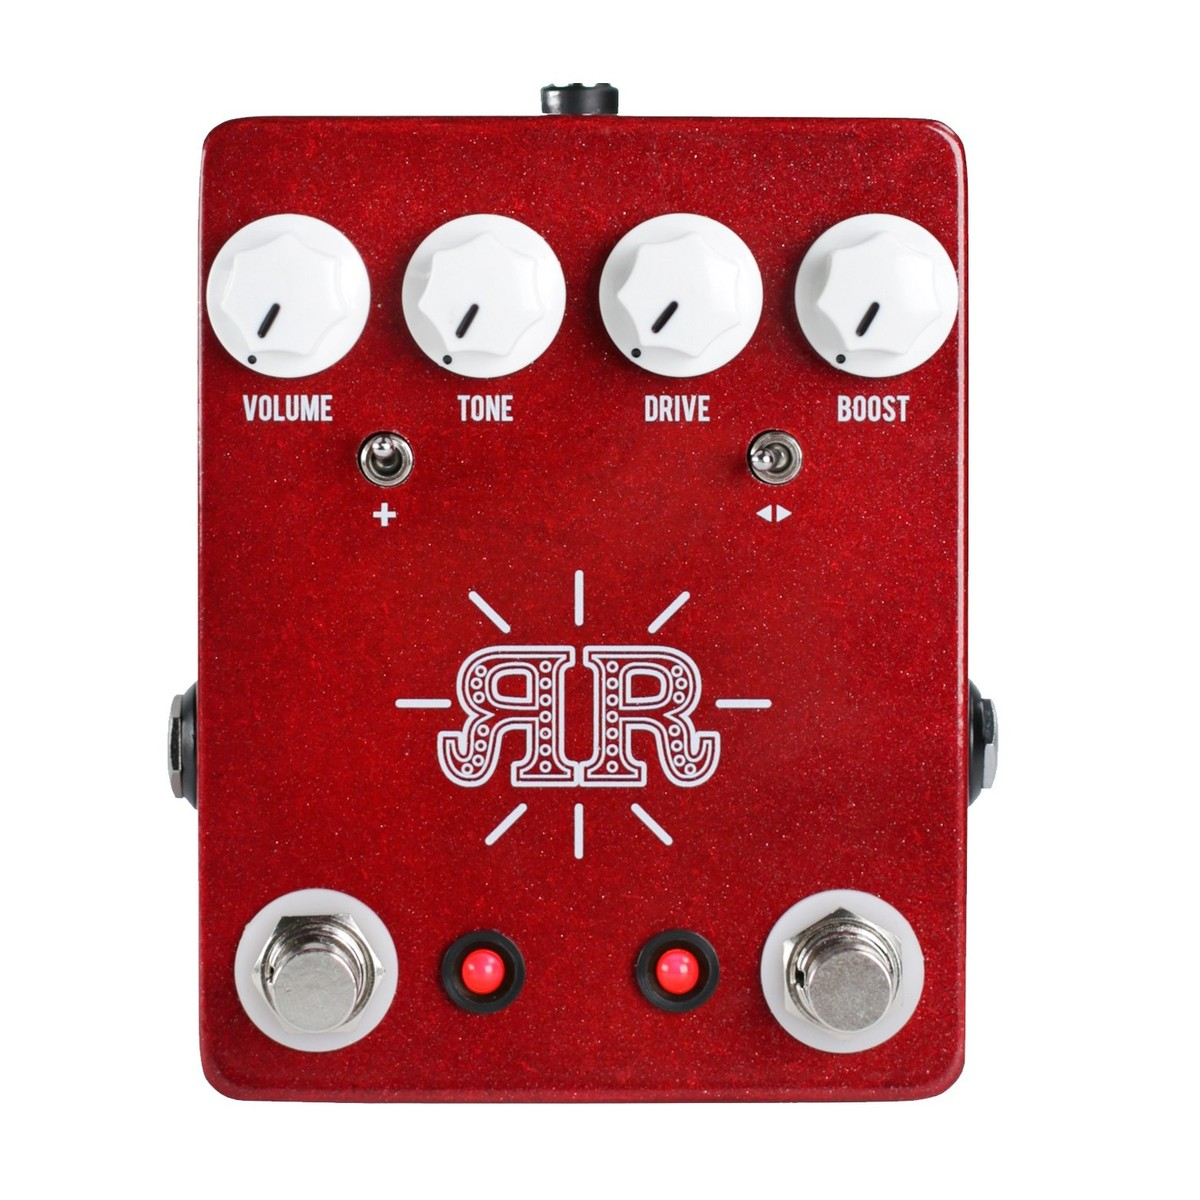 jhs pedals ruby red overdrive distortion and fuzz guitar pedal at gear4music. Black Bedroom Furniture Sets. Home Design Ideas